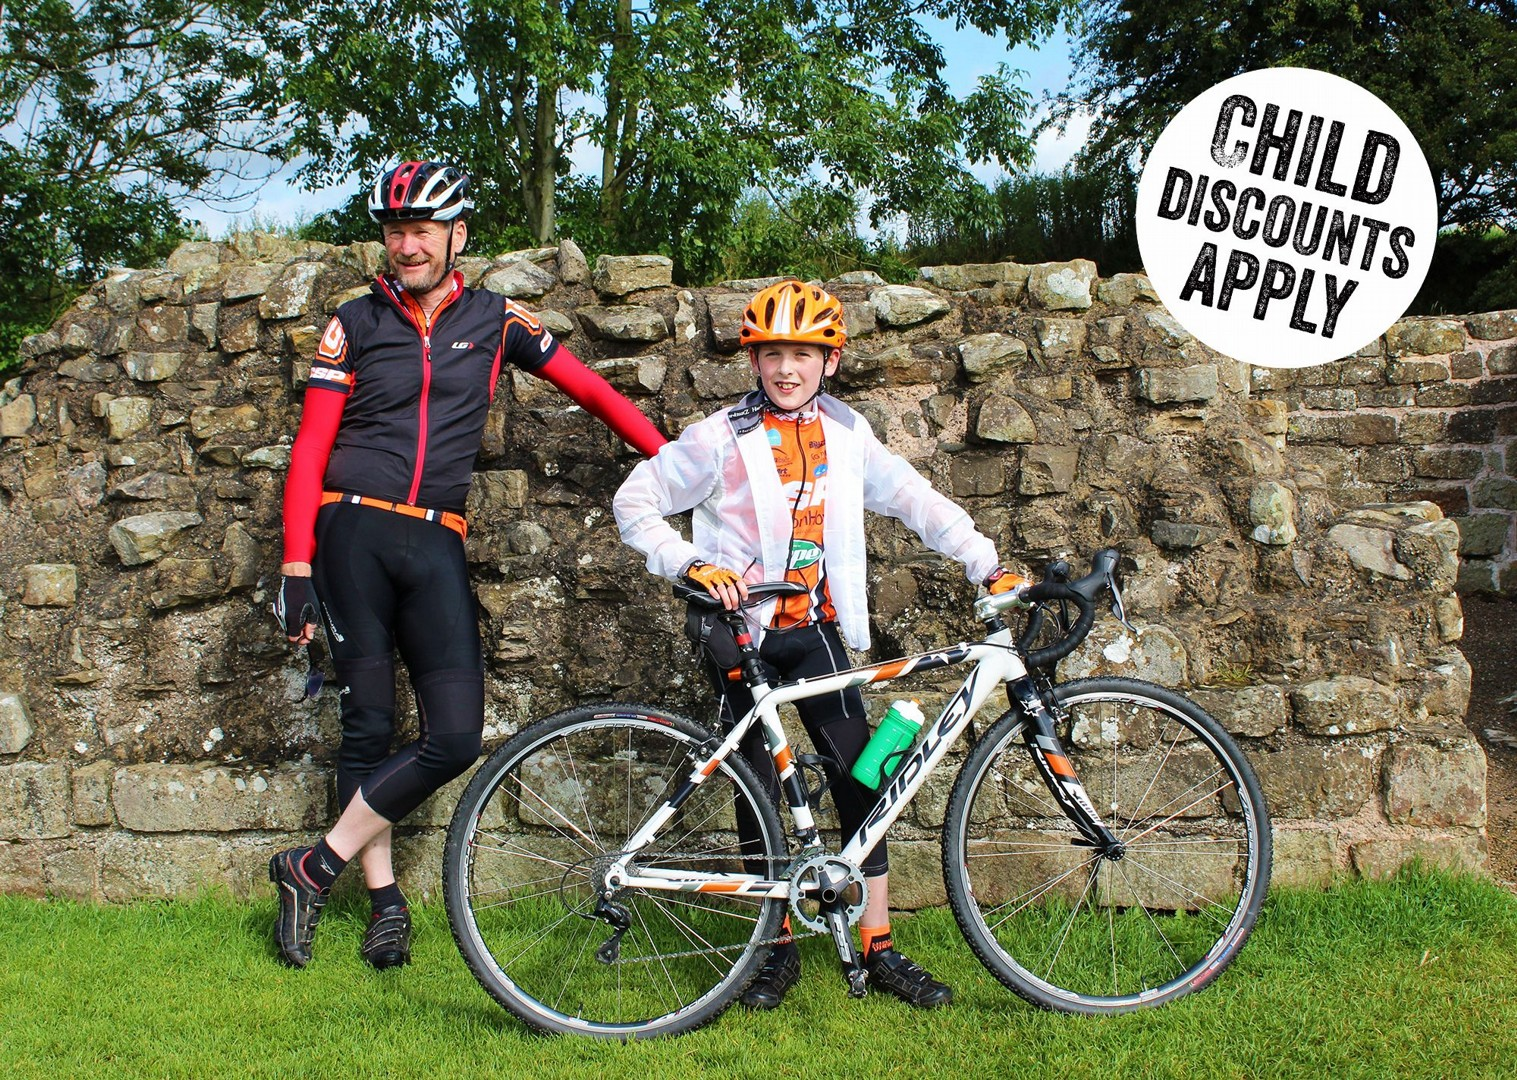 UK - Hadrian's Cycleway - 4 Days Cycling - Self-Guided Family Cycling Holiday copy.jpg - UK - Hadrian's Cycleway - Family Cycling